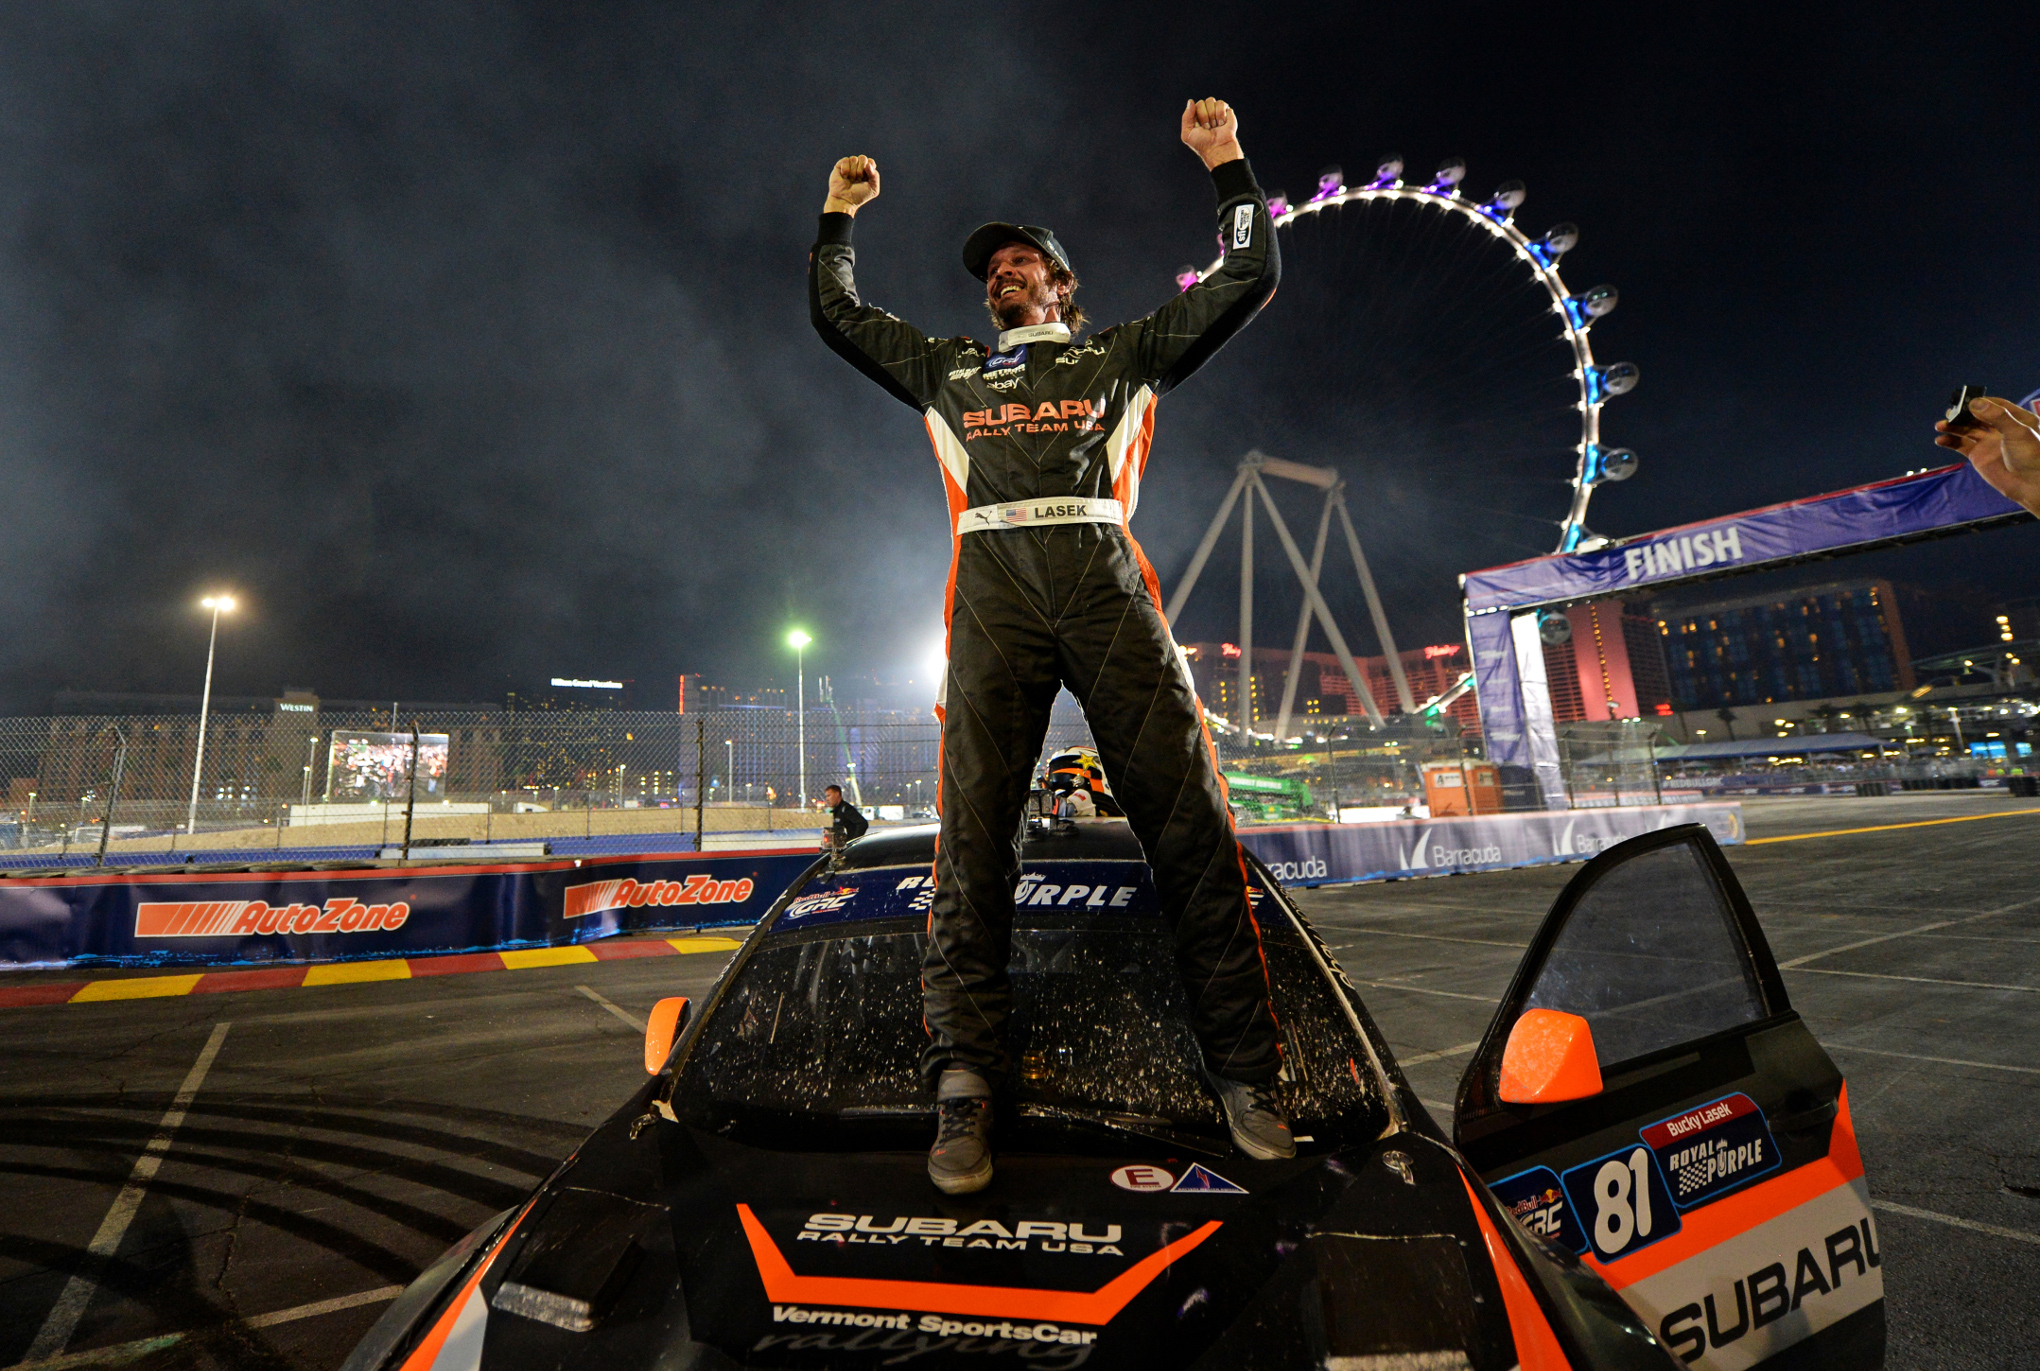 More Xtremer: X-Games gold-winning skateboarder Bucky Lasek will try hand at rally (Killer Rally Video Inside!)